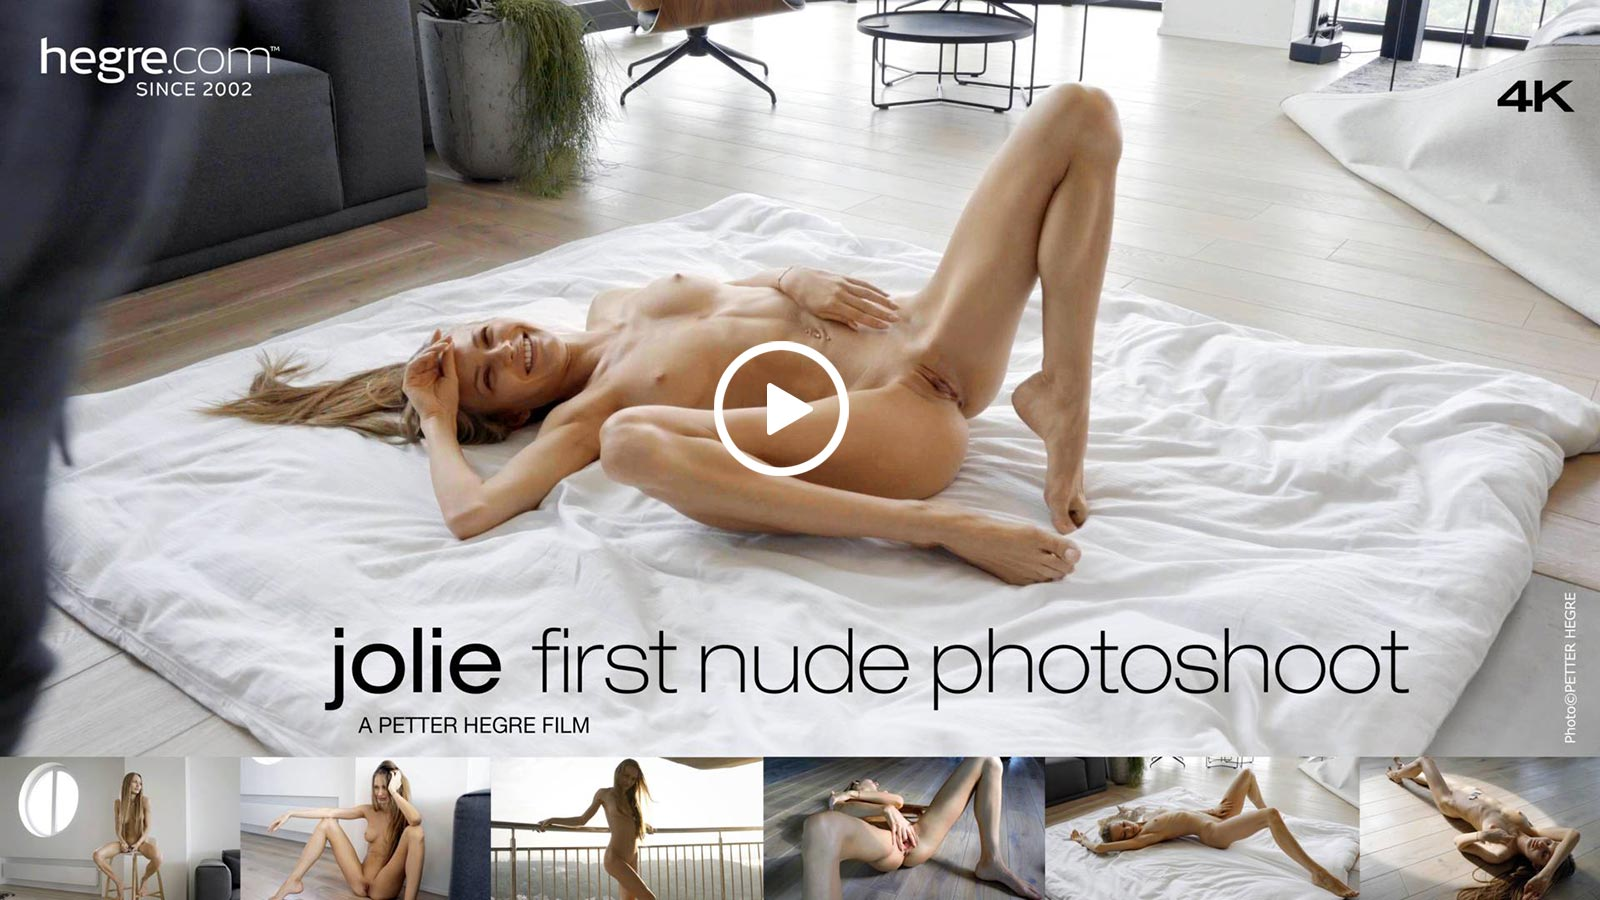 Jolie Hegre First Nude Photoshoot